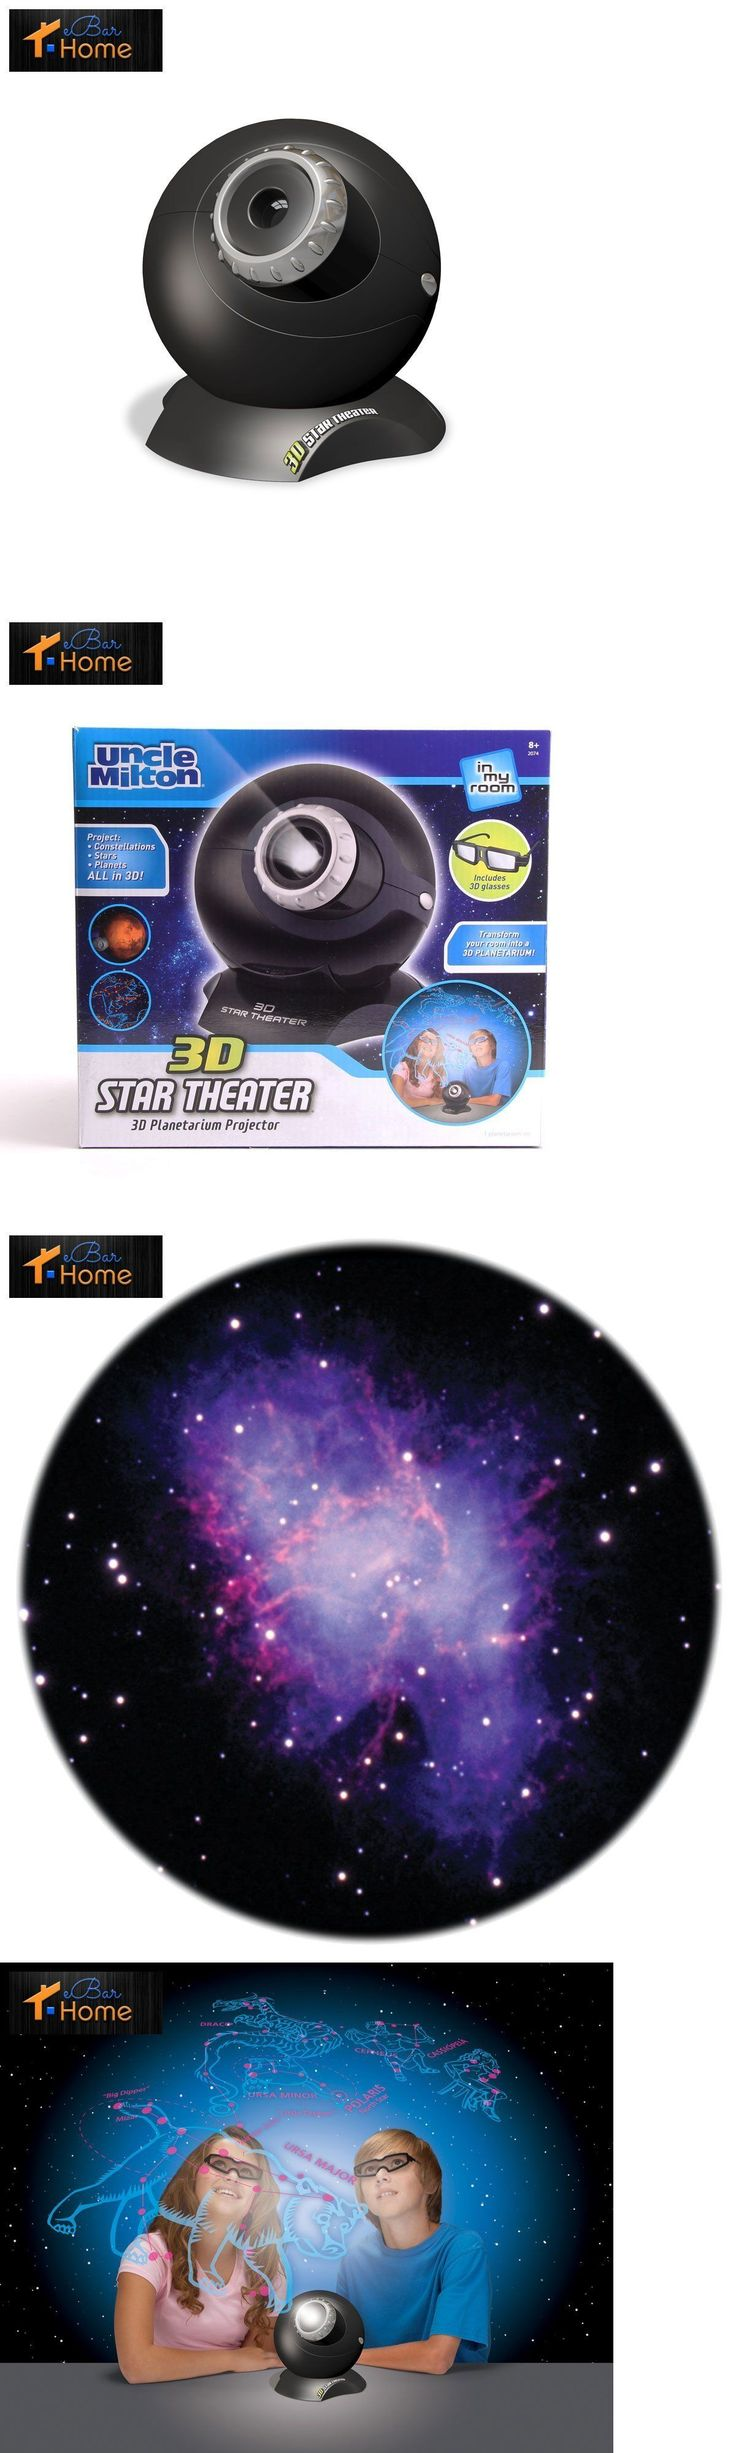 Star projector lamp ebay - Telescopes And Astronomy 31745 In My Room 3d Star Theater Tabletop Planetarium Light Projector